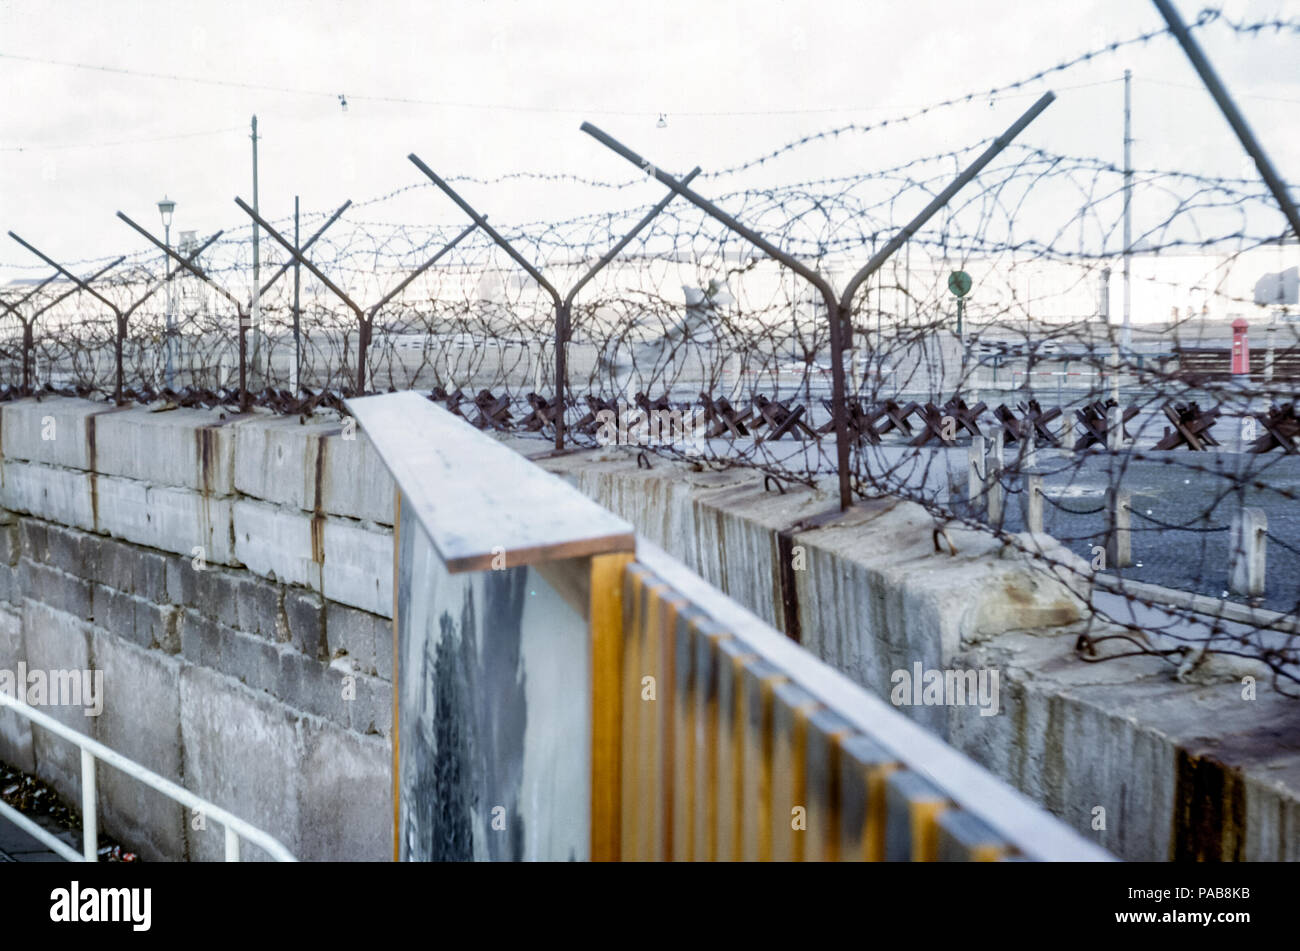 1960s view of Berlin Wall, West Germany, looking into East Germany, GDR, through barbed wire with Czech hedgehog barriers. Digital conversion of slide taken in 1964 - Stock Image